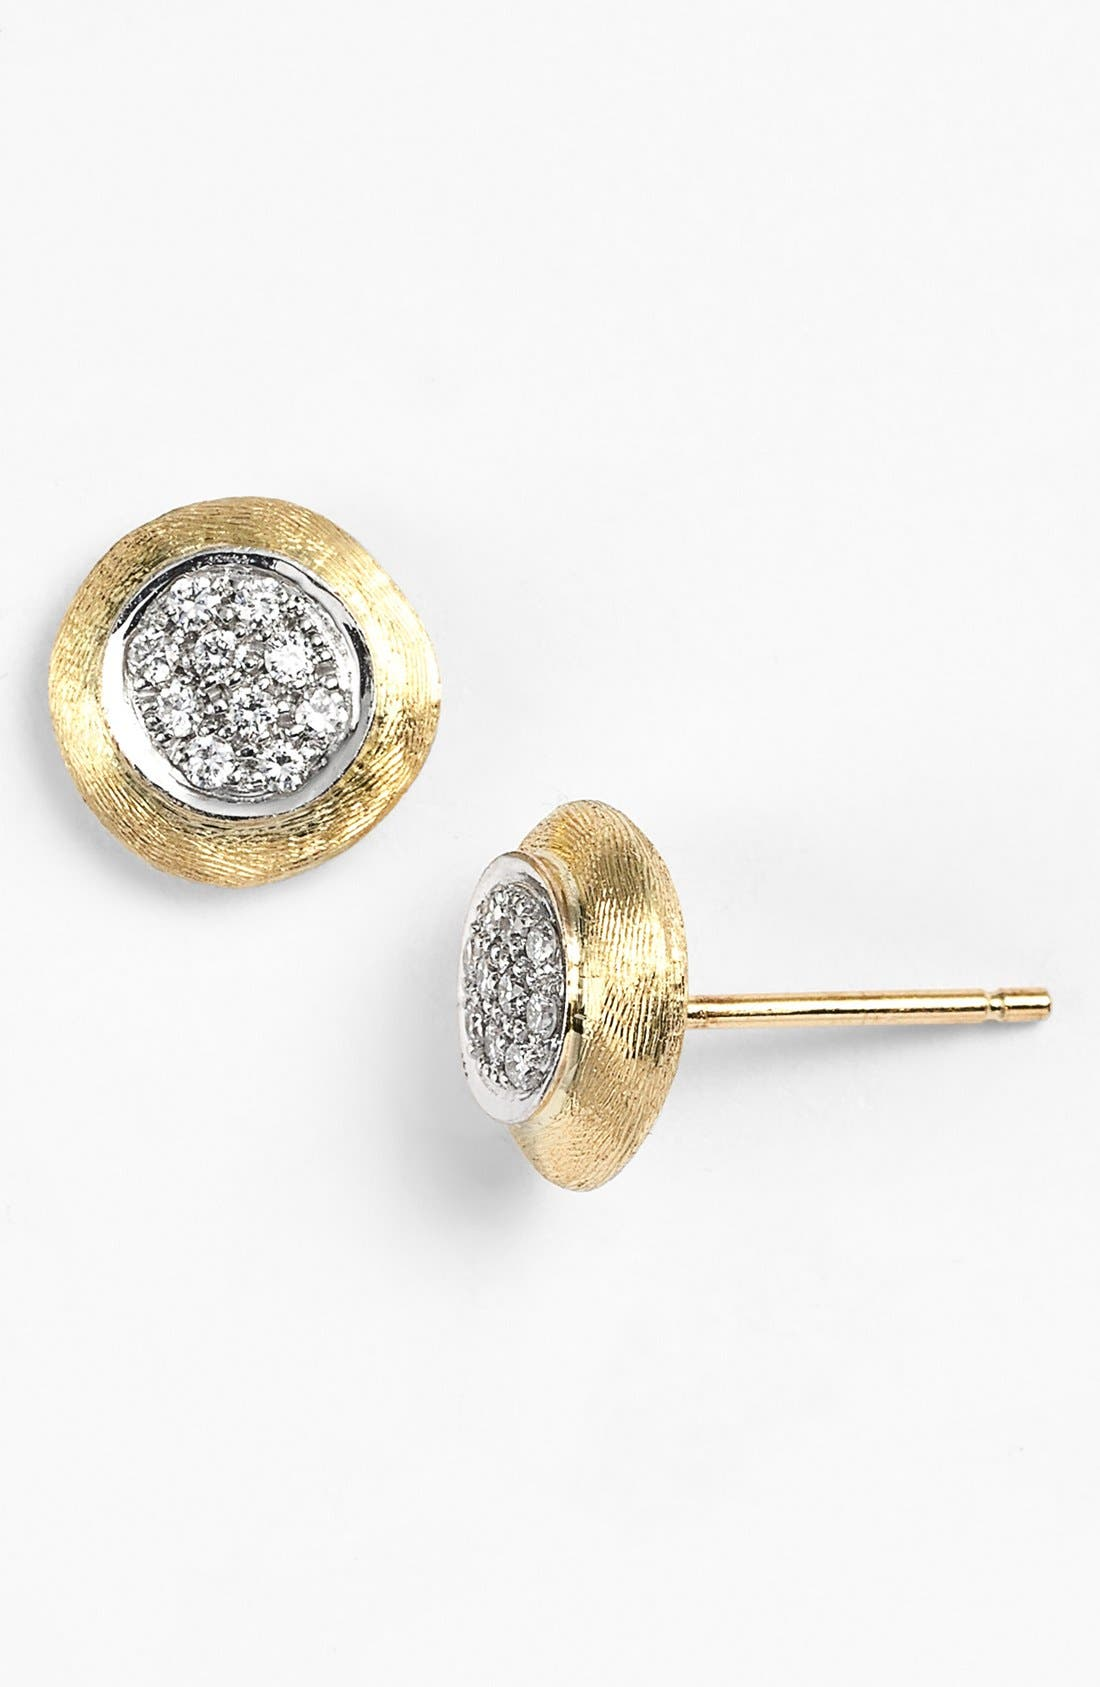 Alternate Image 1 Selected - Marco Bicego 'Delicate' Diamond Stud Earrings